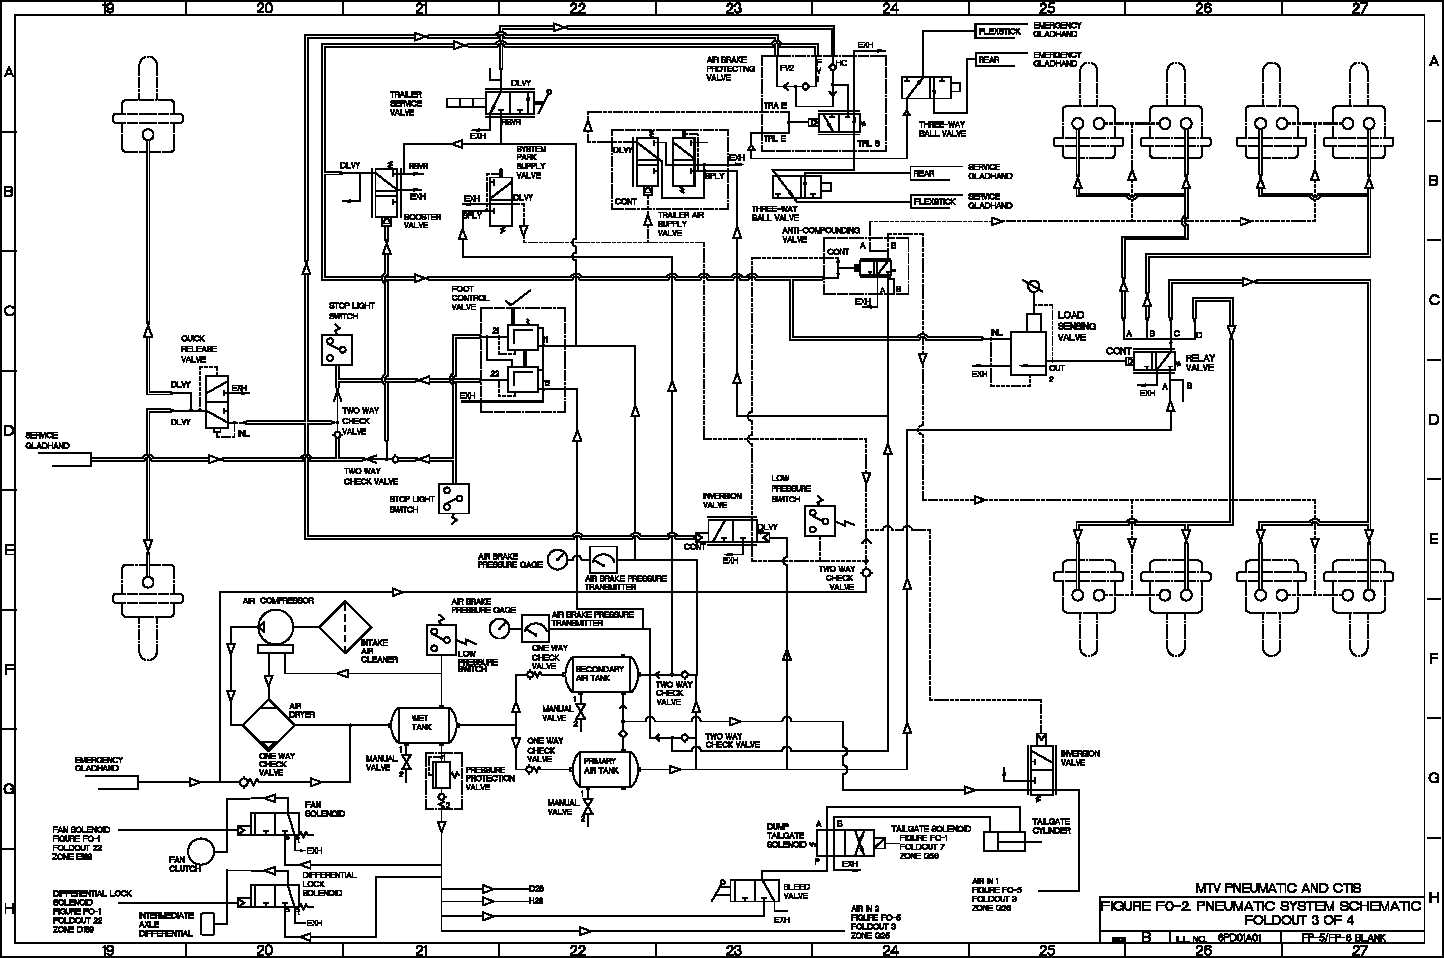 F20b Ecu Wiring Diagram moreover Suzuki Burgman 400 Wiring Diagram as well Bank 2 Sensor 1 Location Chevy Traverse moreover Zama Carb Diagram Chart likewise Pneumatic Solenoid Valve Schematic Symbols. on acura parts diagram